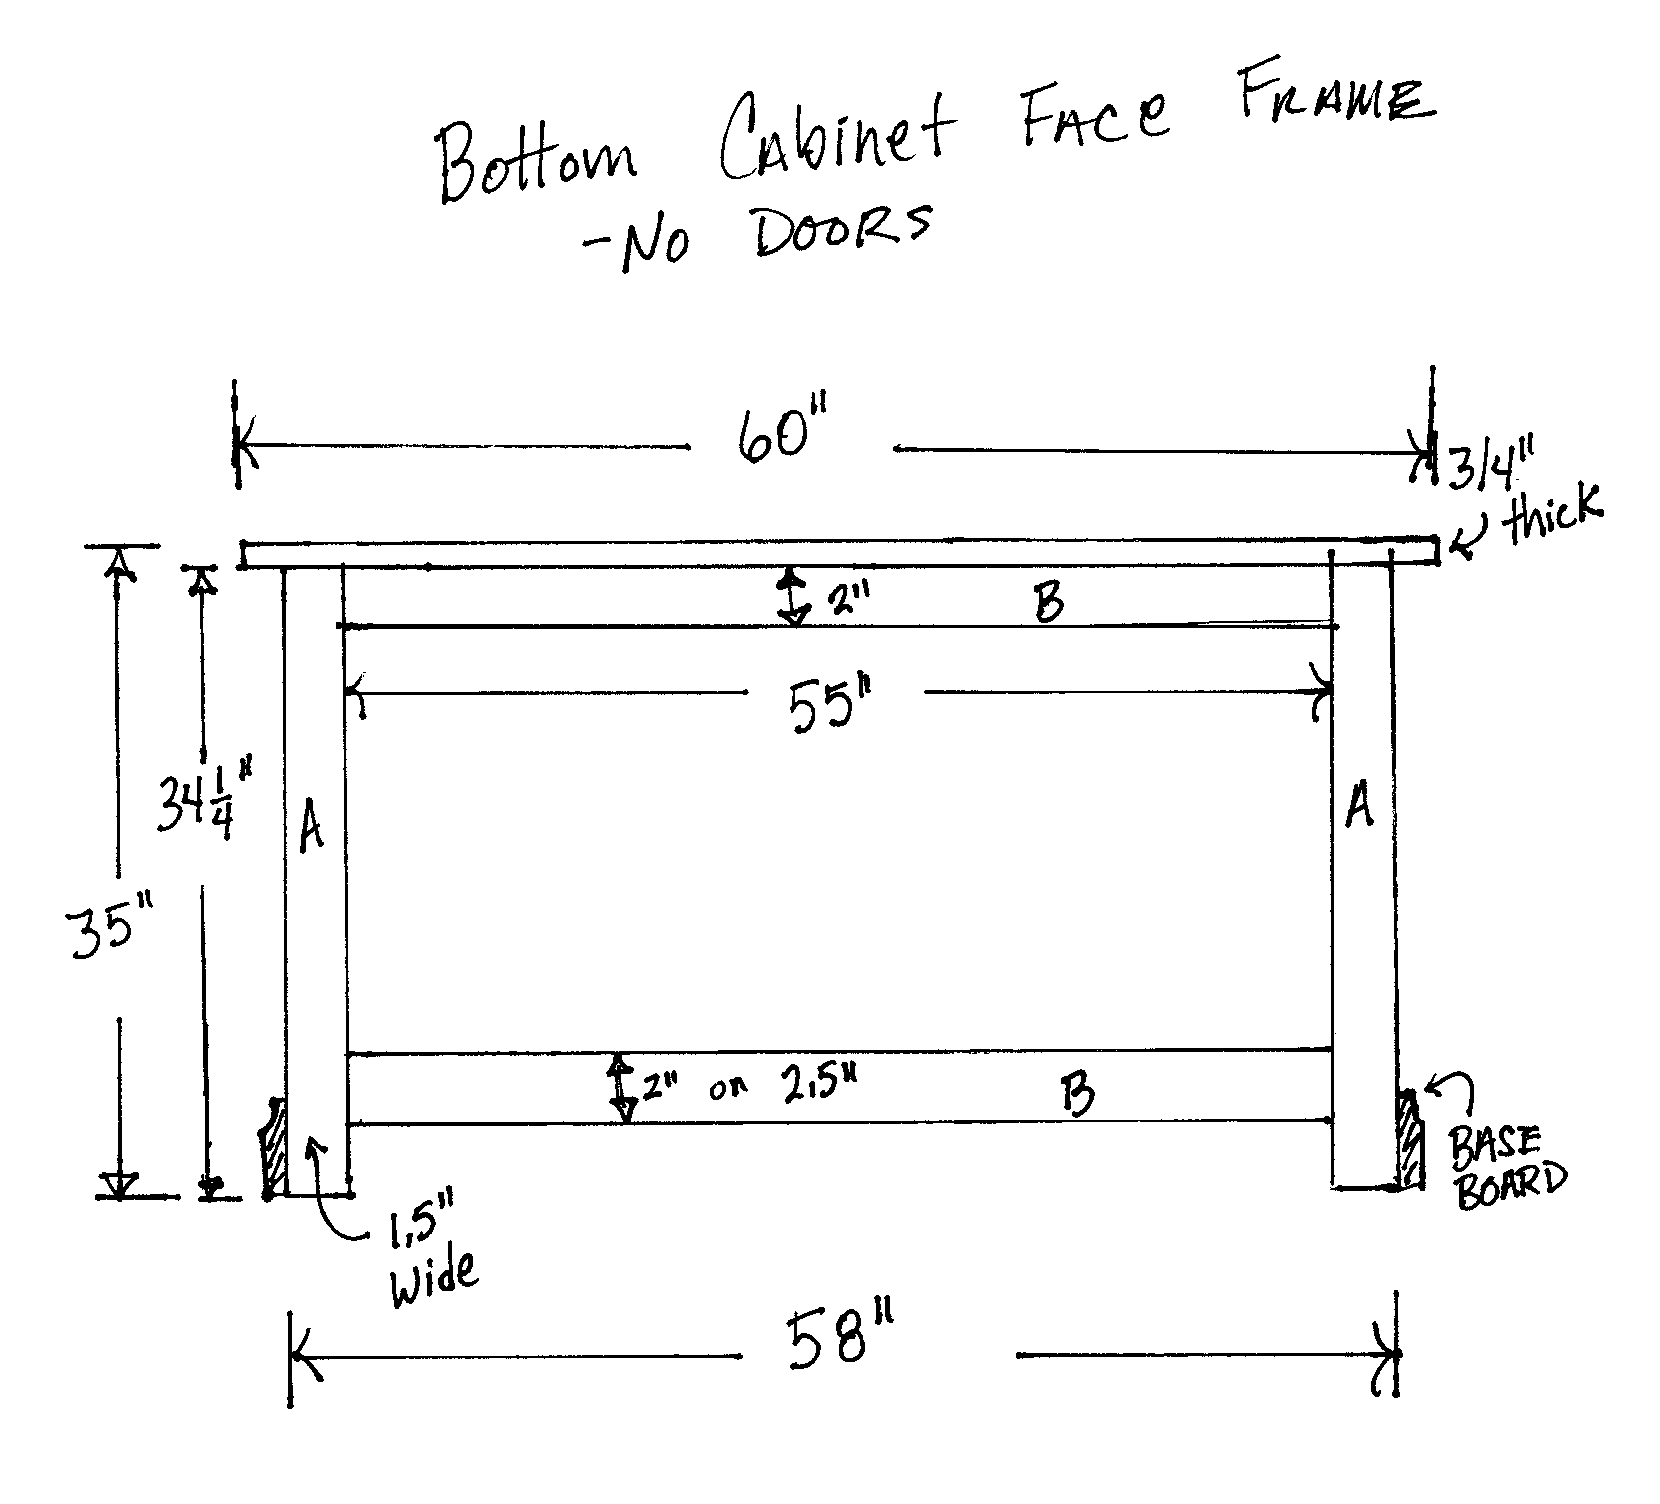 Bottom Face Frame